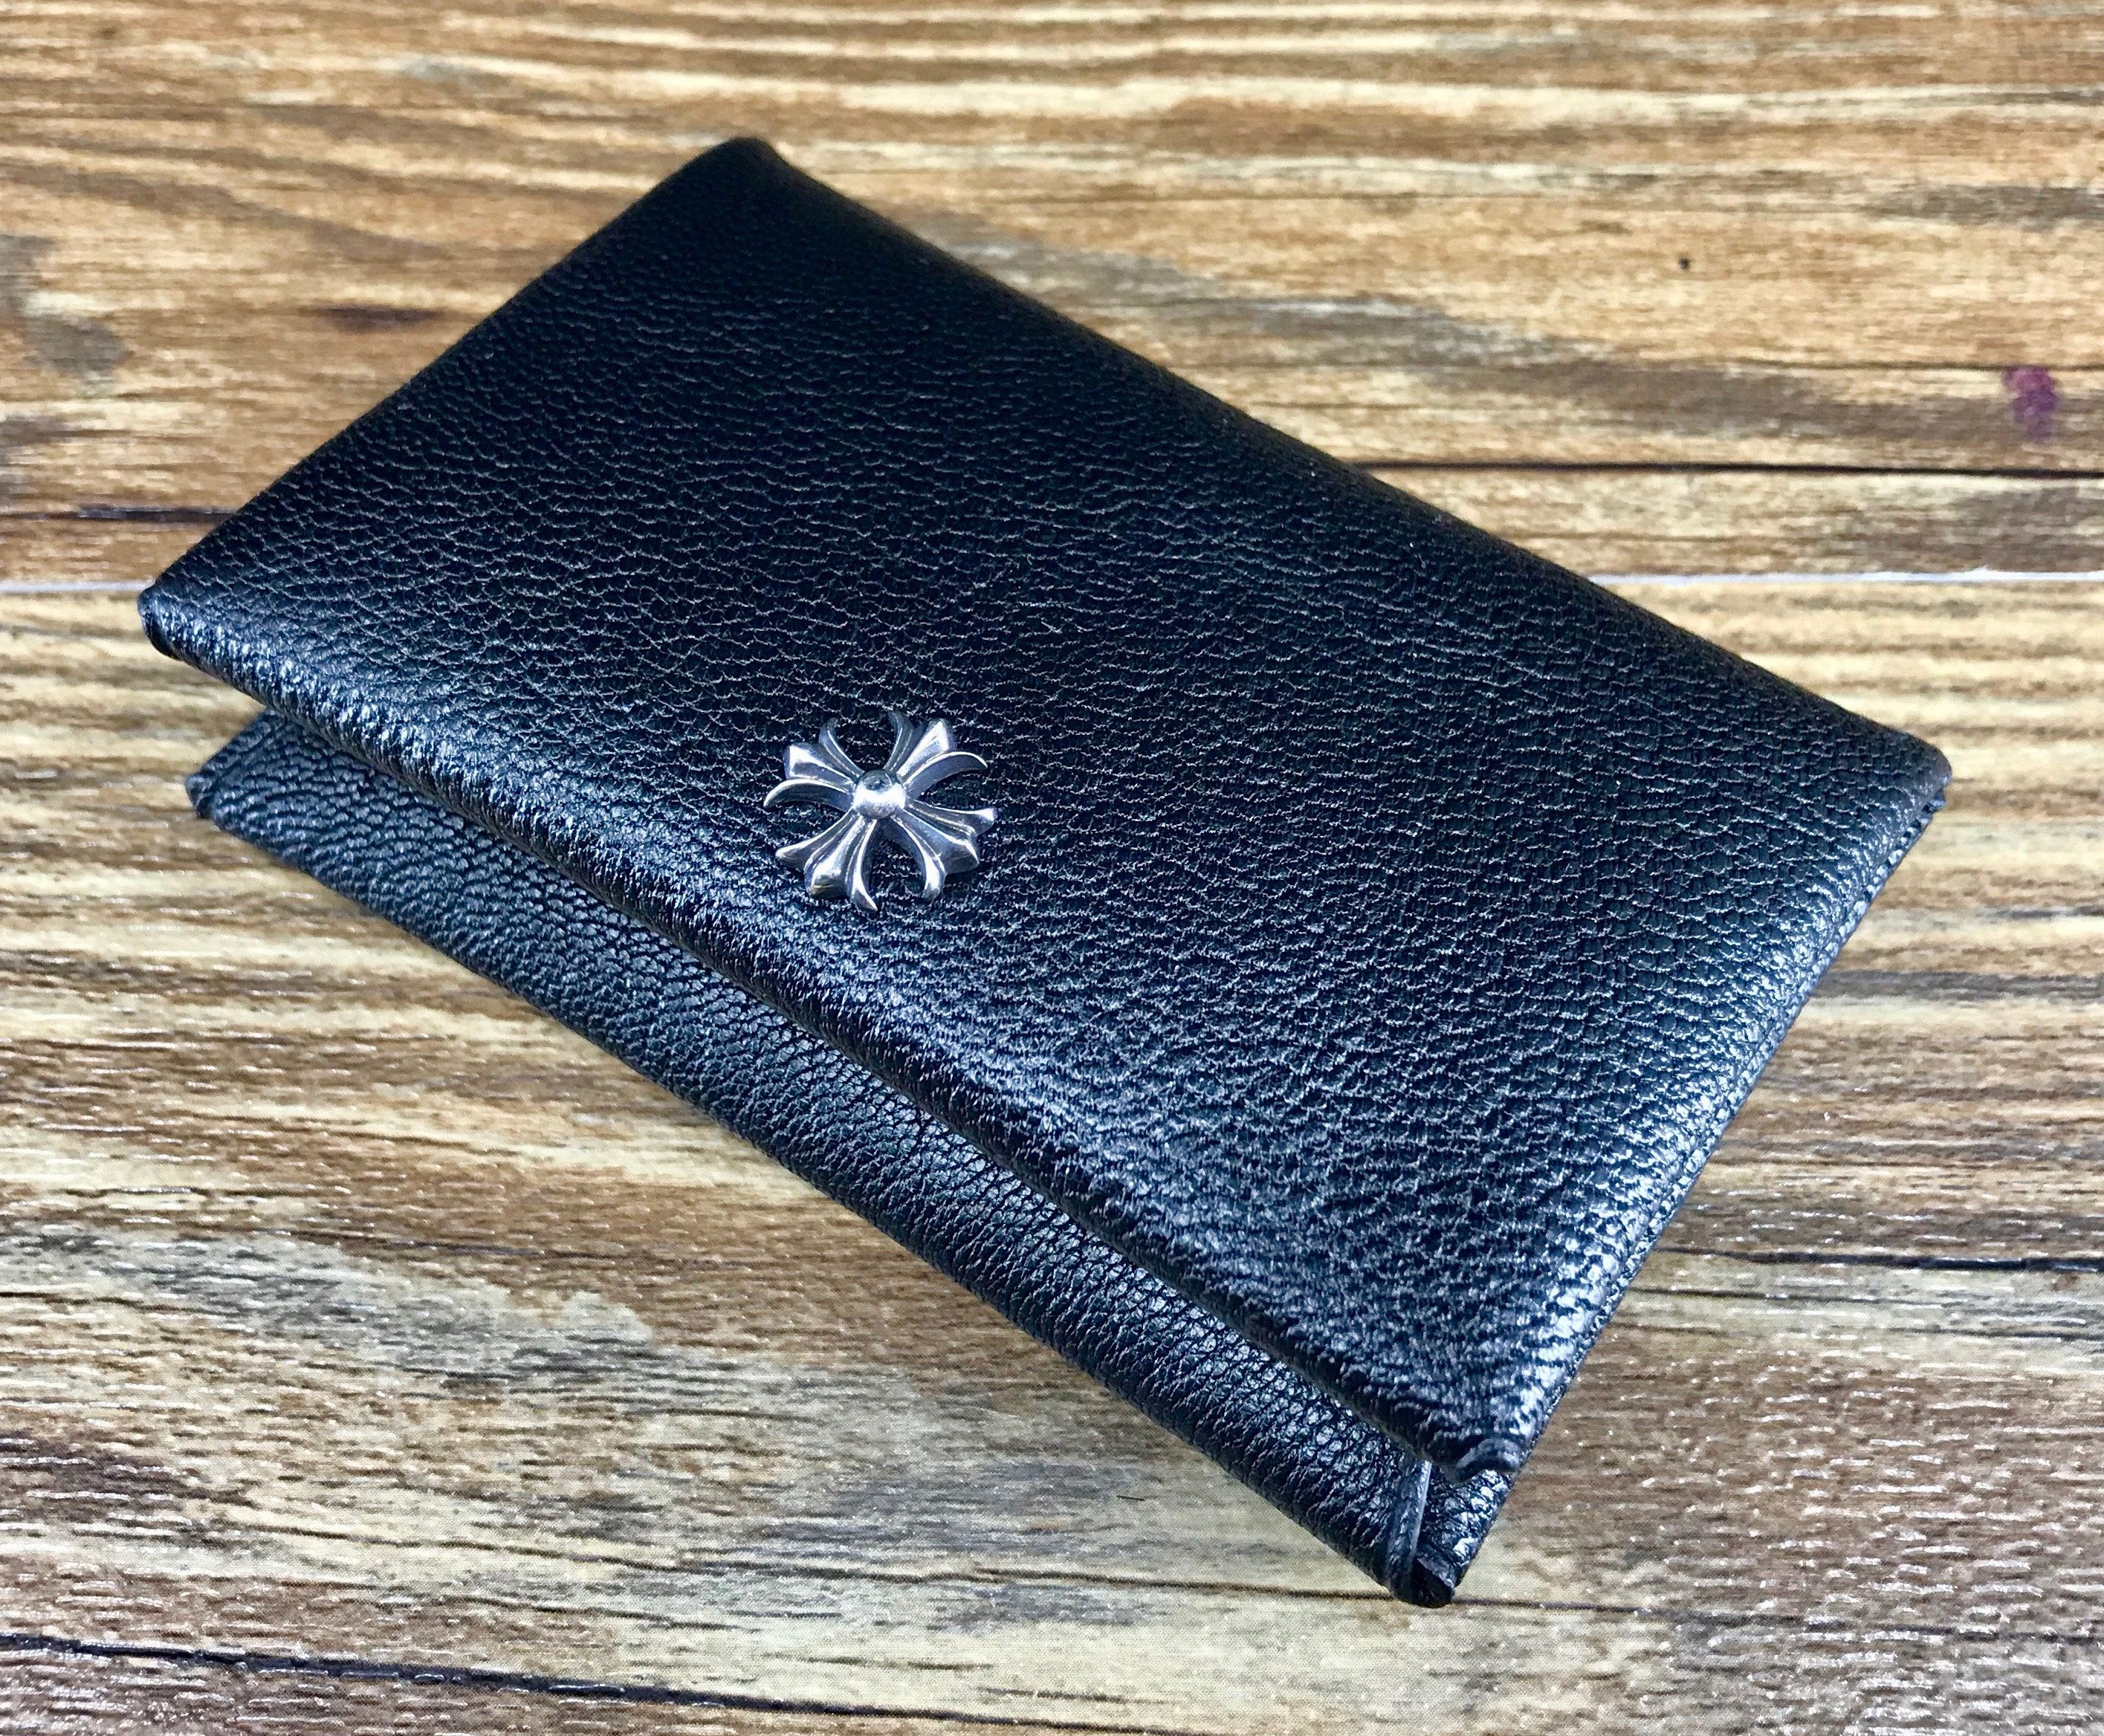 Excited To Share This Item From My Etsy Shop Leather Card Holders Black Card Holder Business Car Card Holder Leather Business Card Case Card Holder Wallet